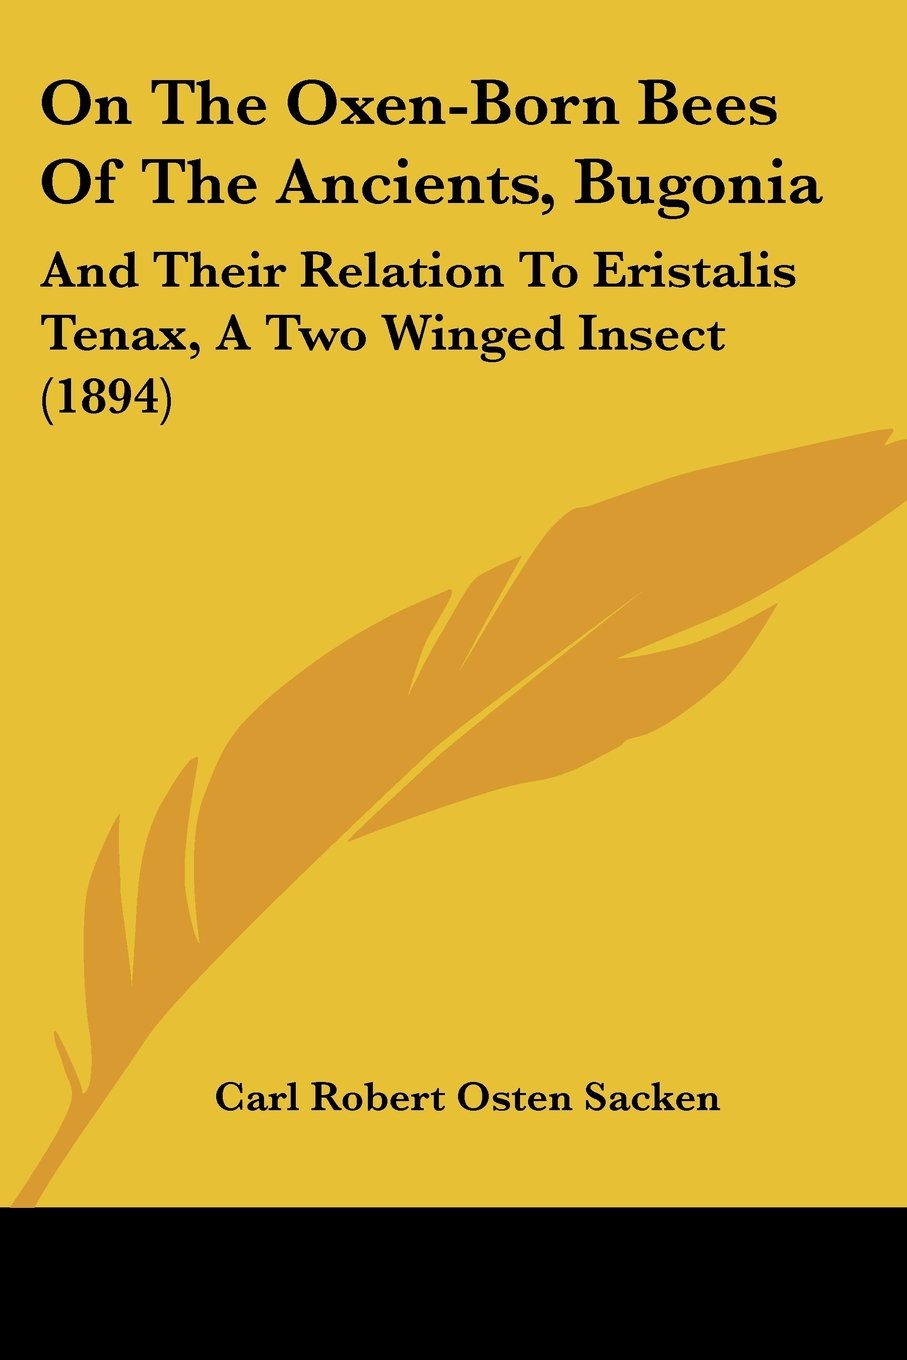 On The Oxen-Born Bees Of The Ancients, Bugonia: And Their Relation To Eristalis Tenax, A Two Winged Insect (1894) pdf epub